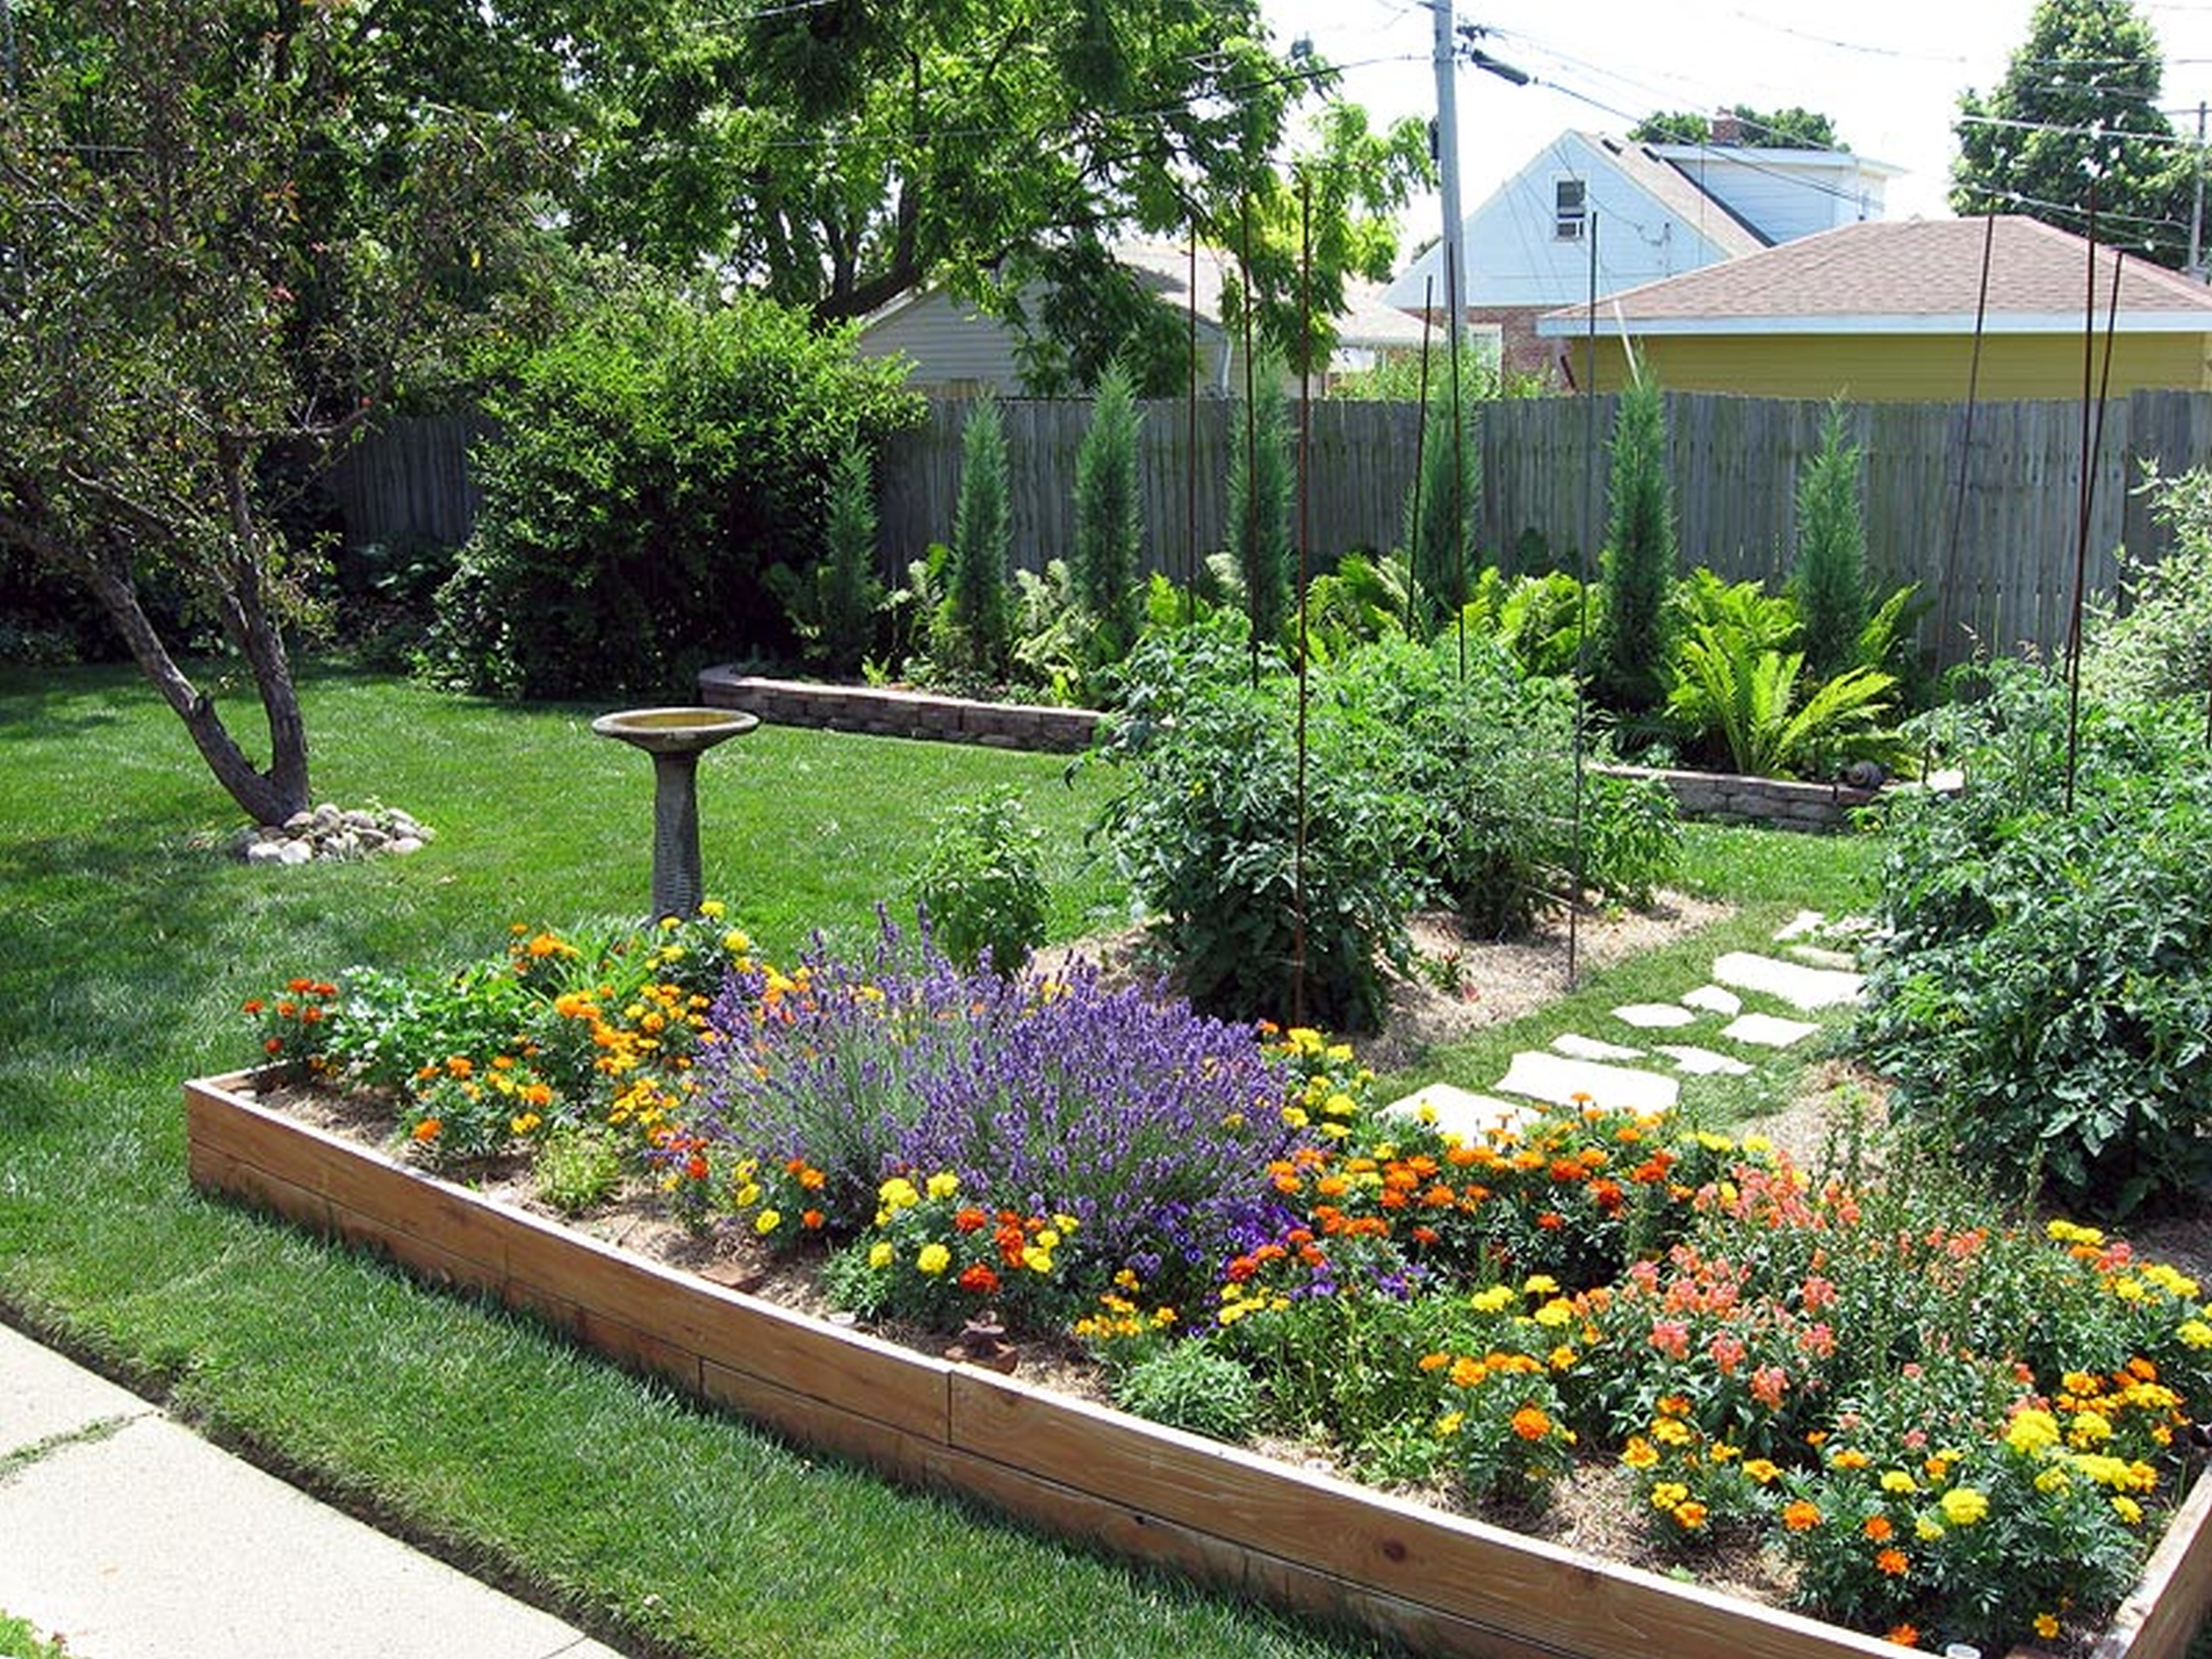 Best ideas about Garden Ideas Backyard . Save or Pin The Tren st Spring Backyard Design Ideas for Your Home Now.